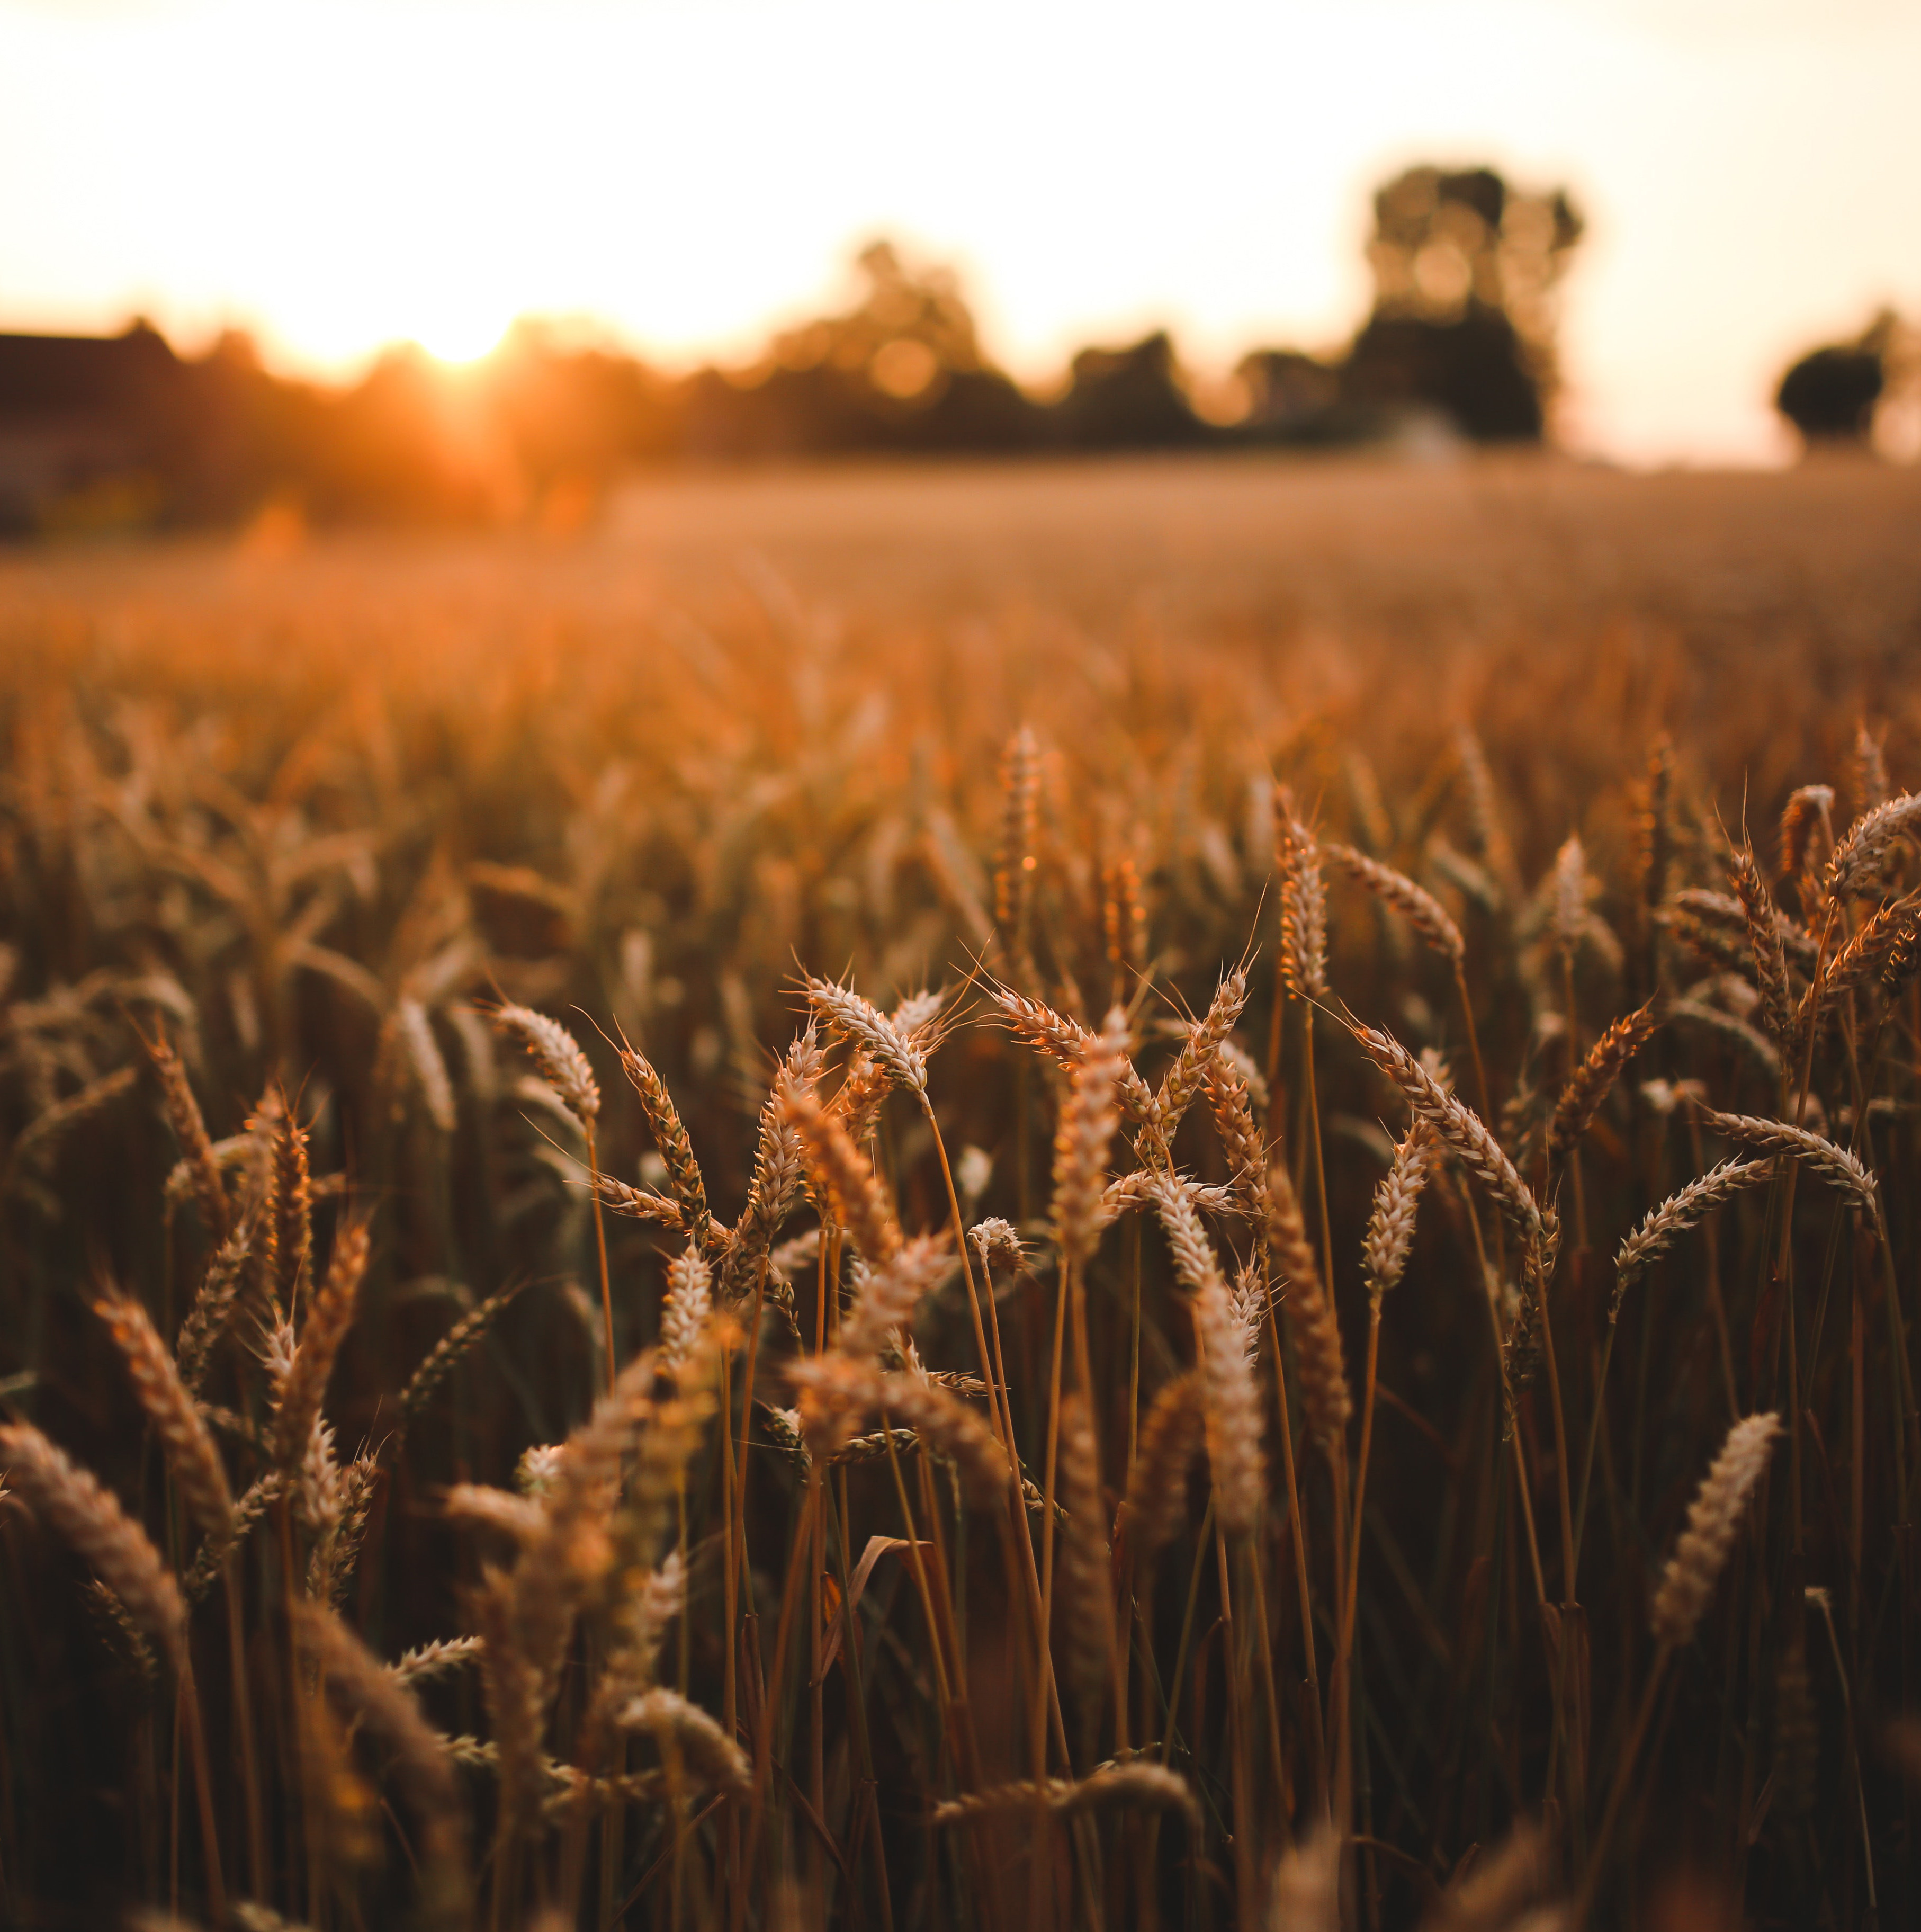 agriculture-field-grain-5980